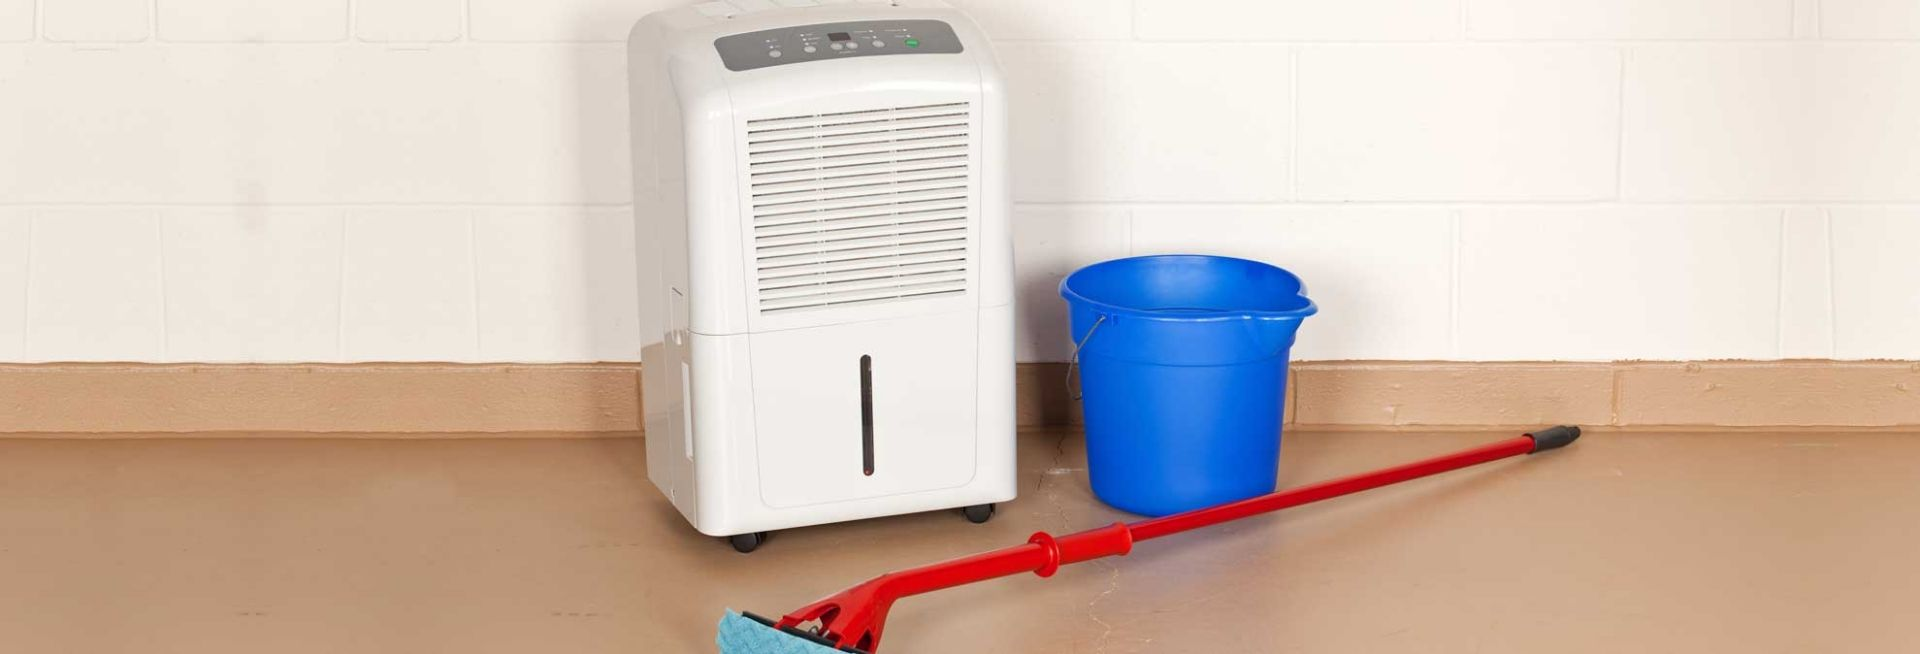 Best Dehumidifiers For Basements Crawl Spaces And Other Damp